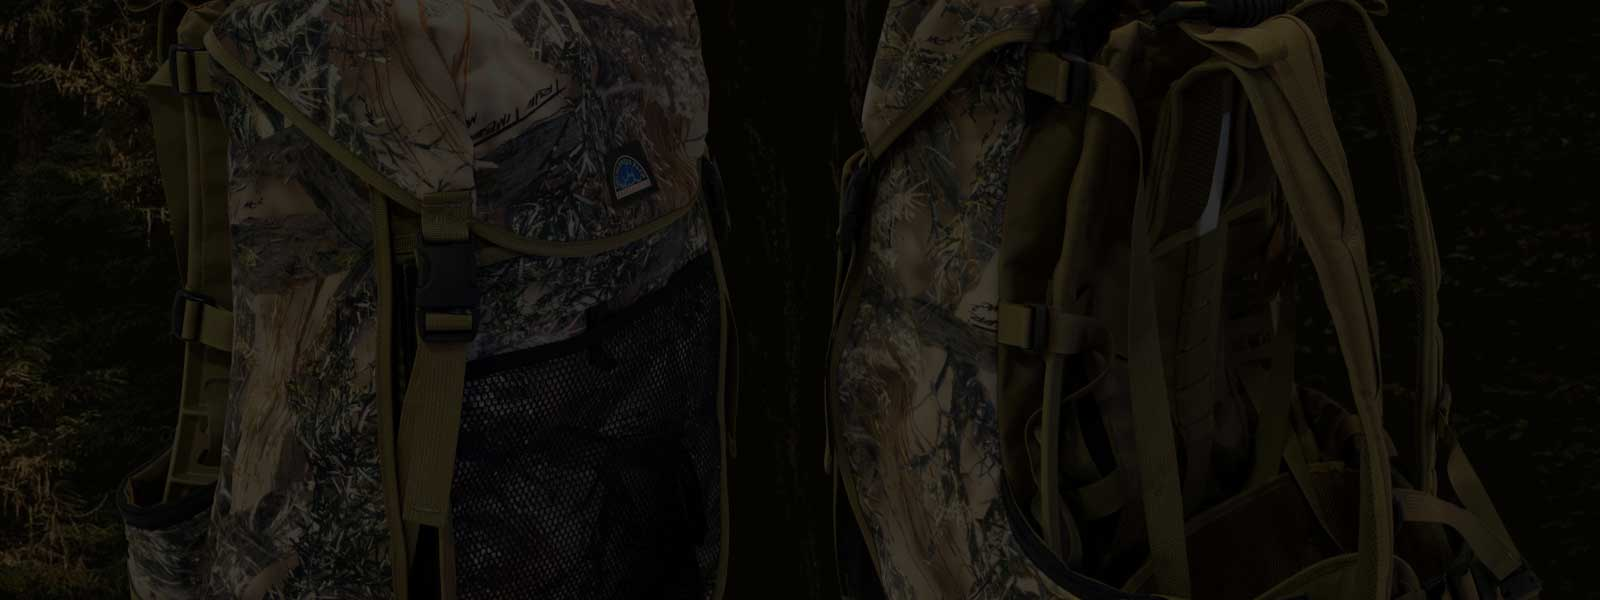 Giveaway: Hunting & Fishing Bags from Wilderness Pack Specialties